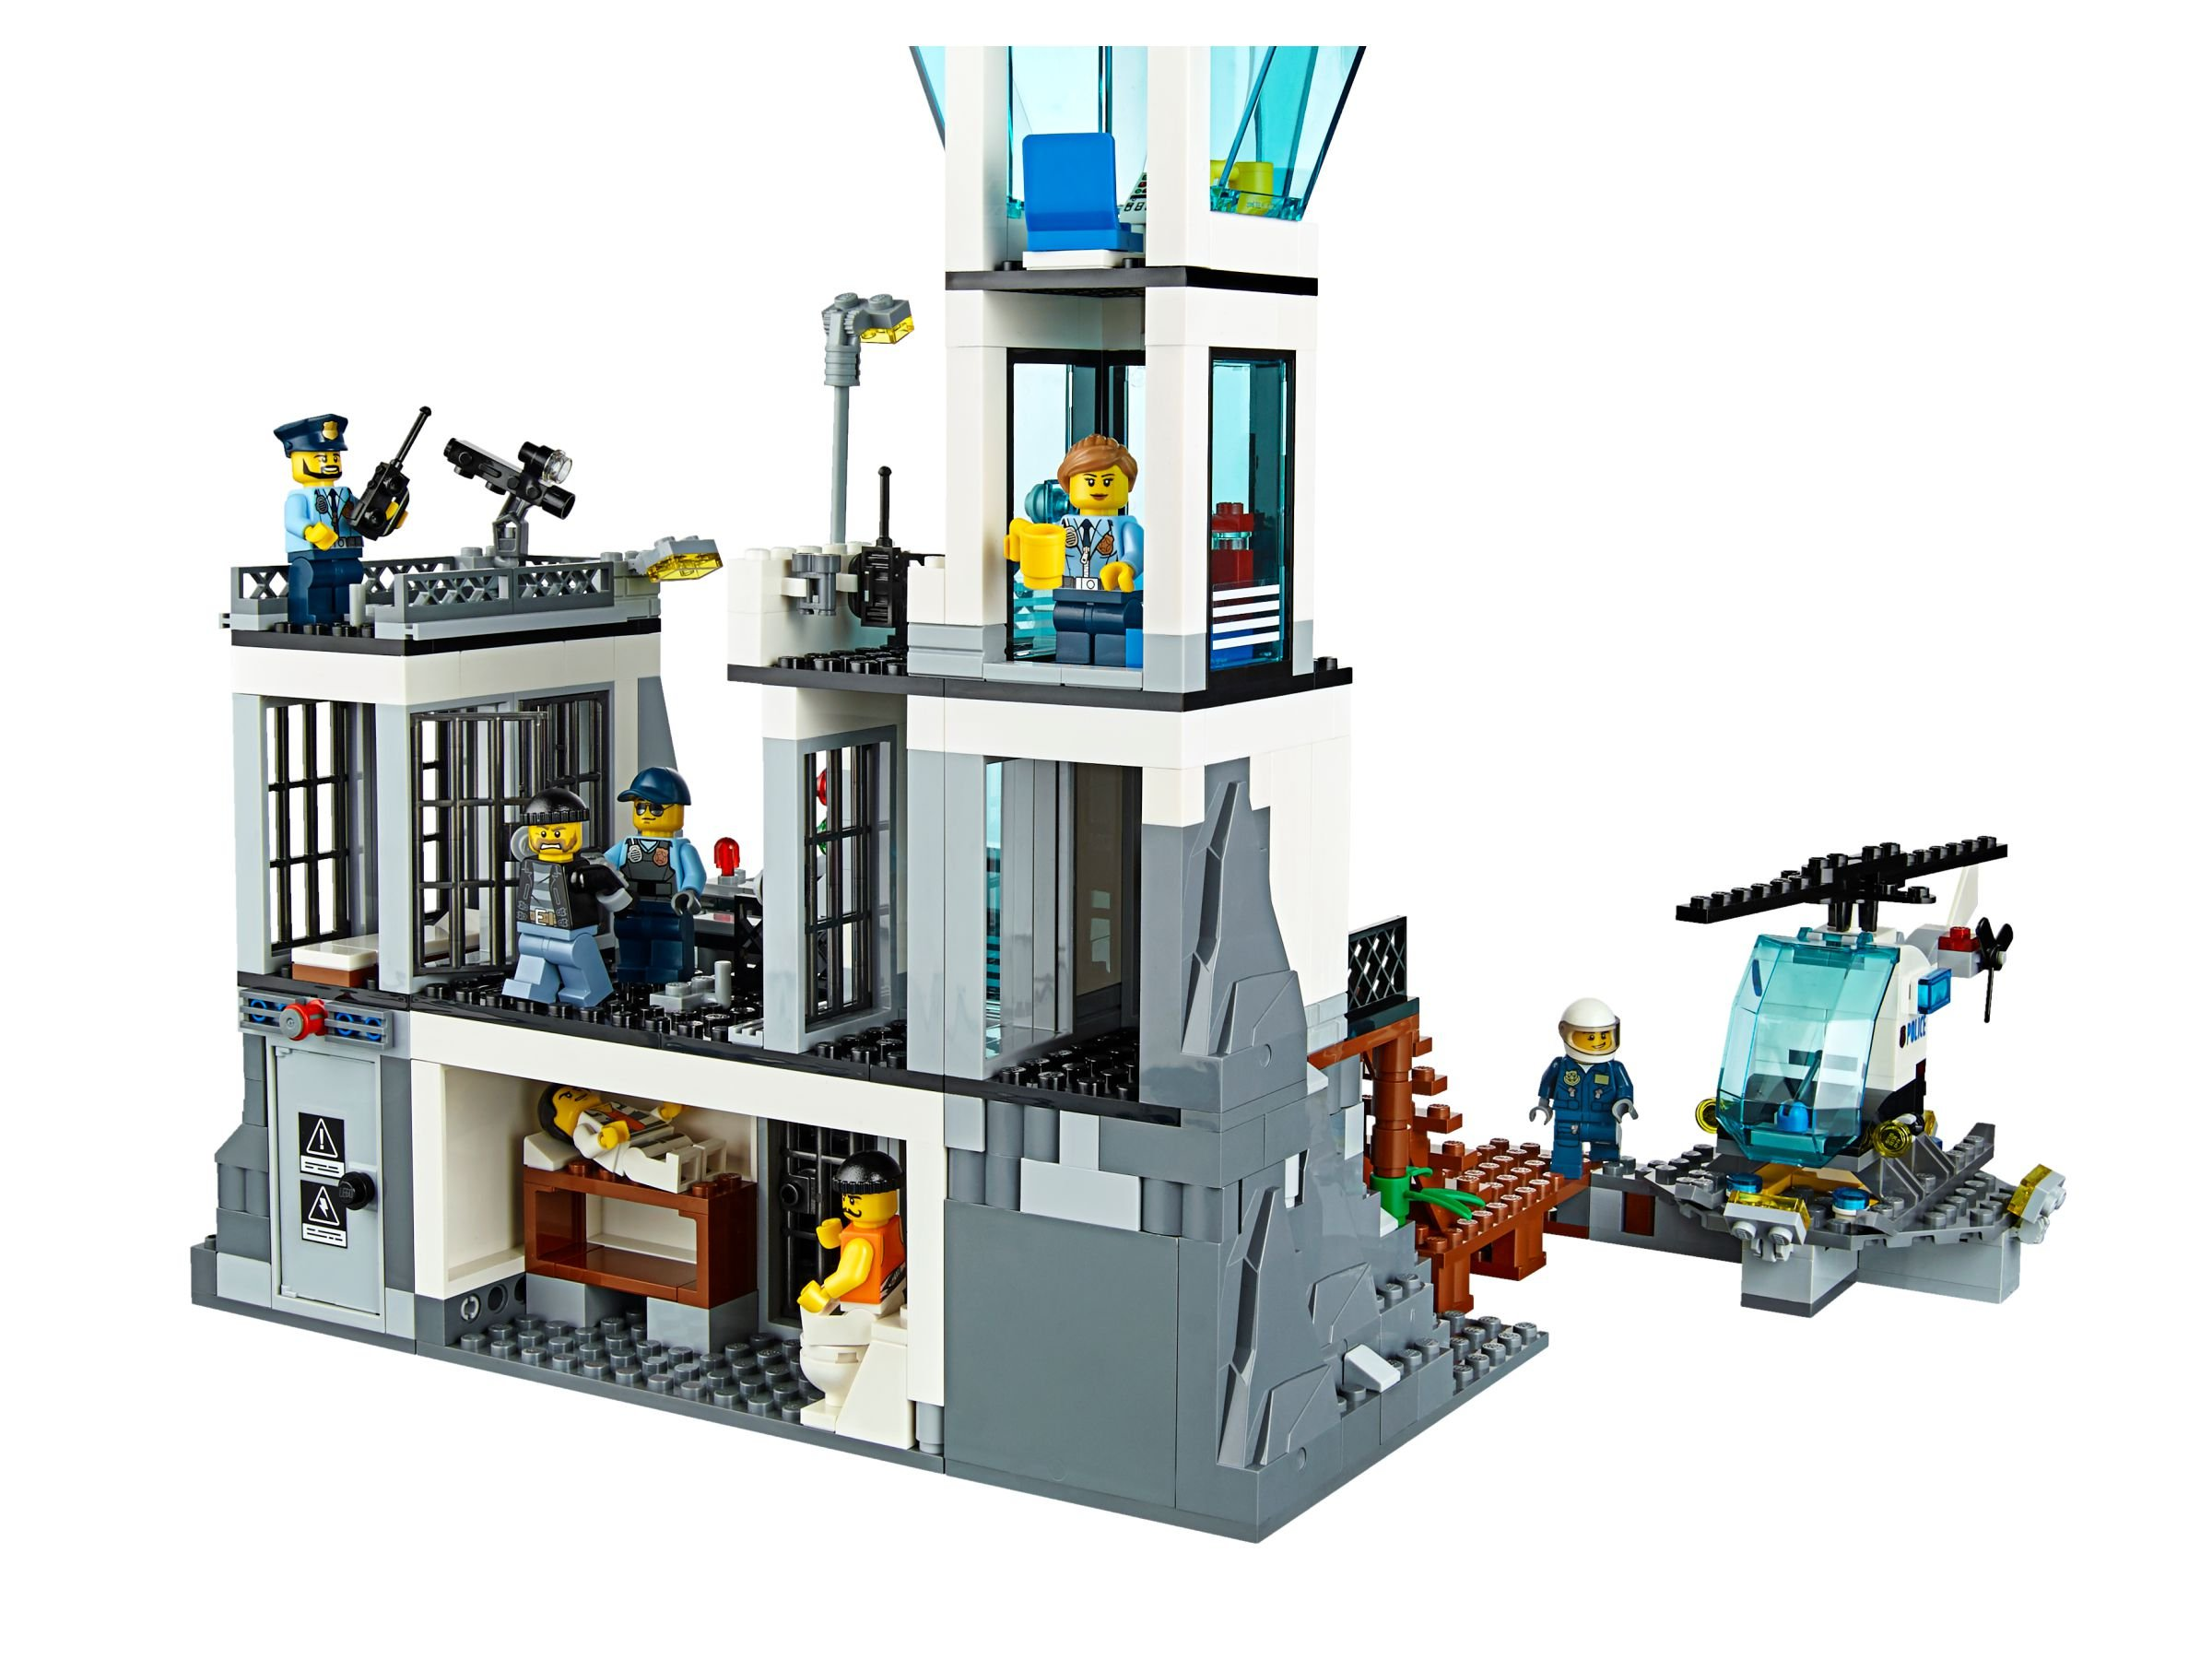 lego 60130 polizeiquartier auf der gef ngnisinsel city 2016 prison island brickmerge. Black Bedroom Furniture Sets. Home Design Ideas